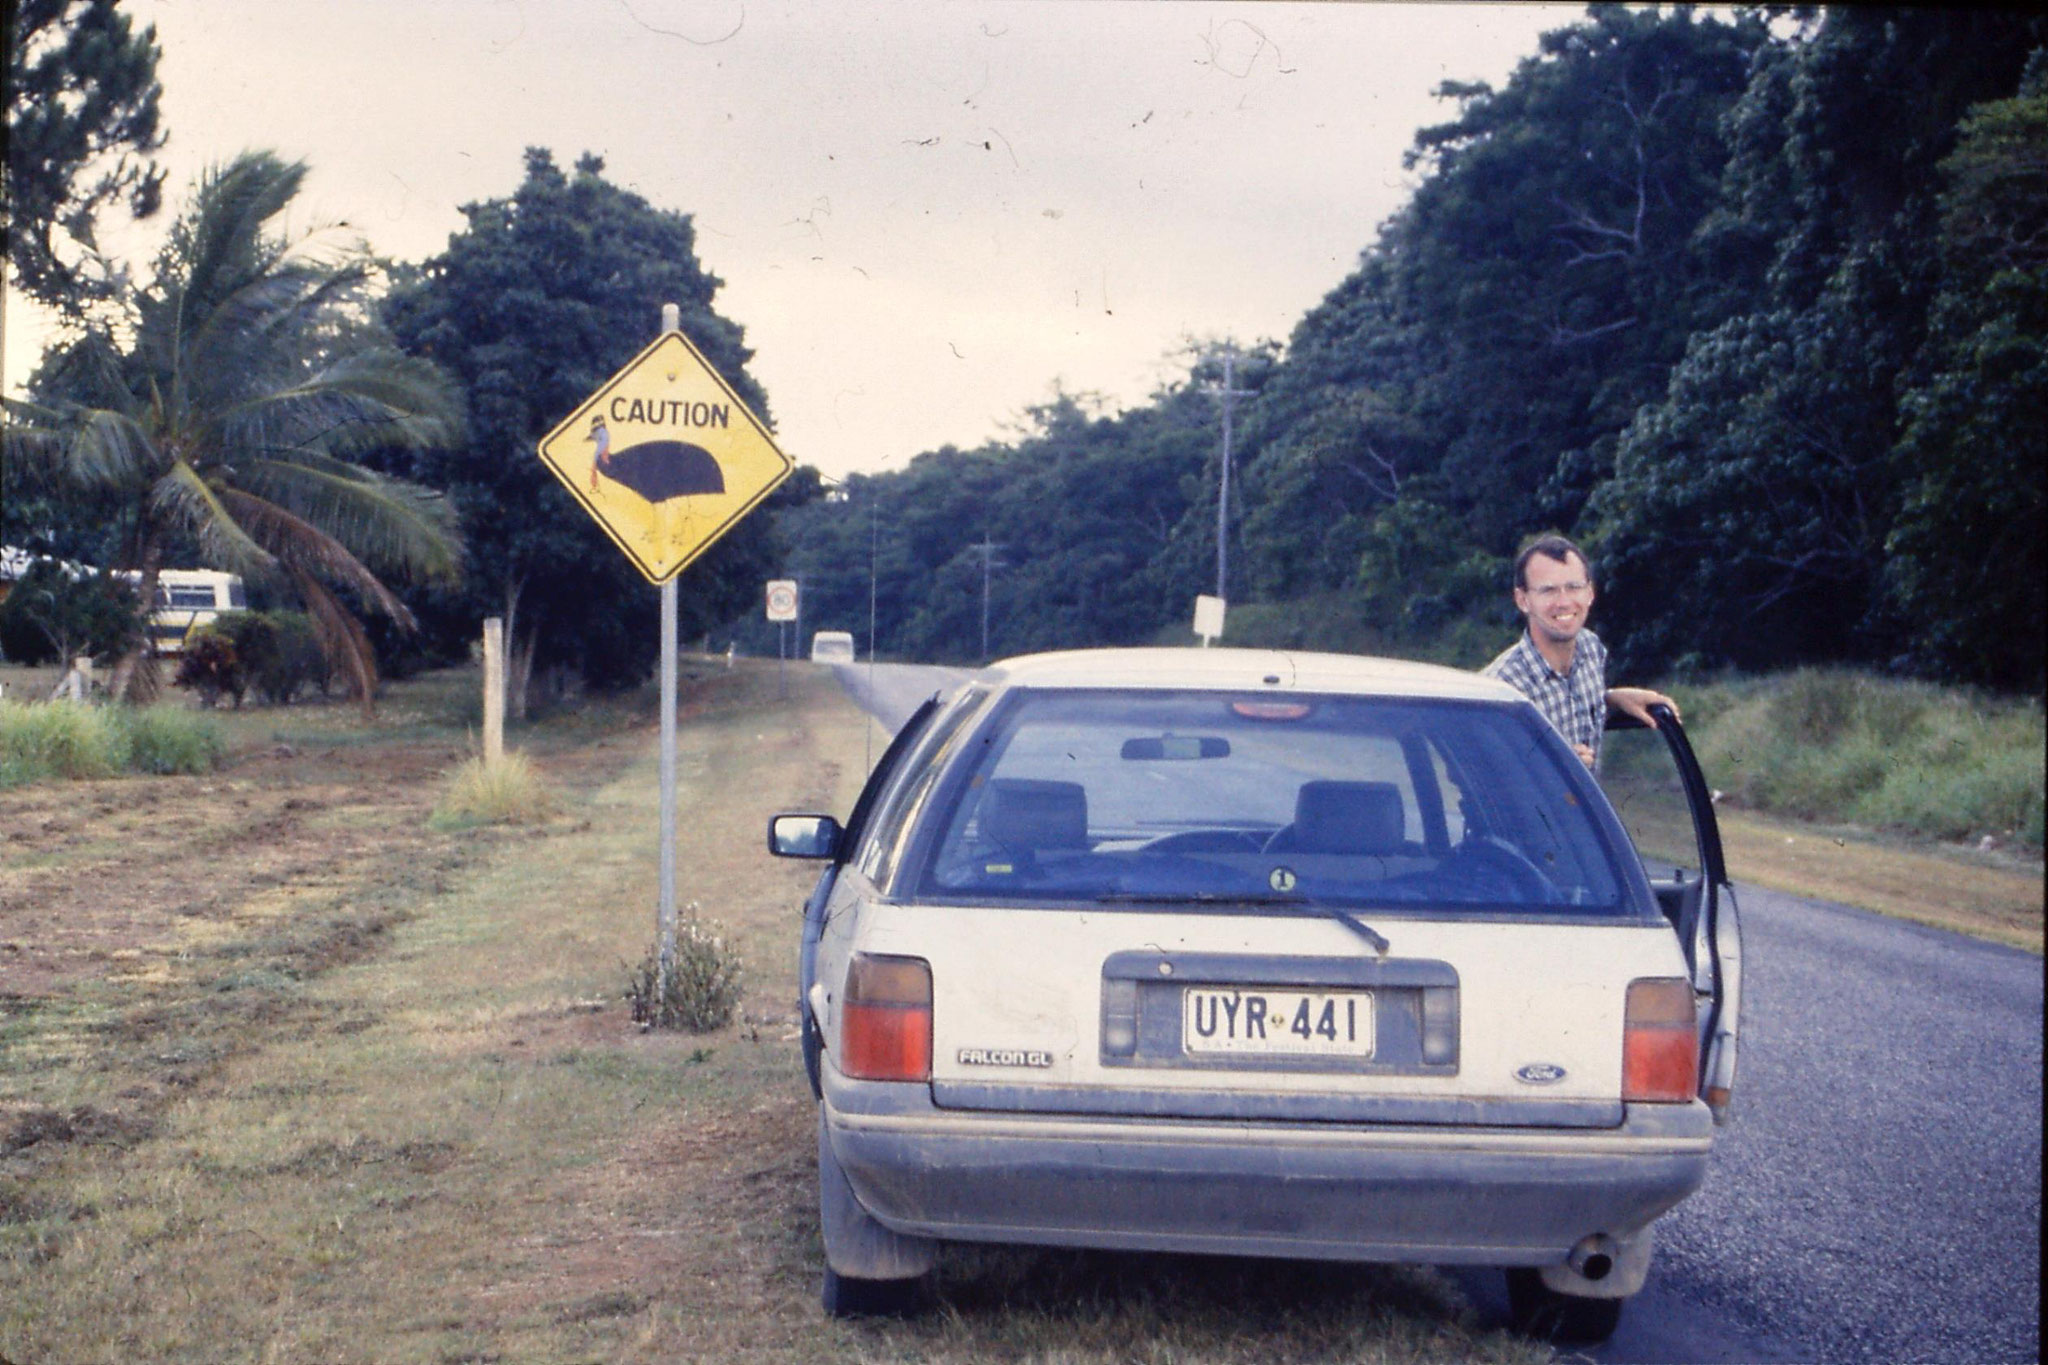 30/10/1990: 31: Mission Beach, cassowary warning sign